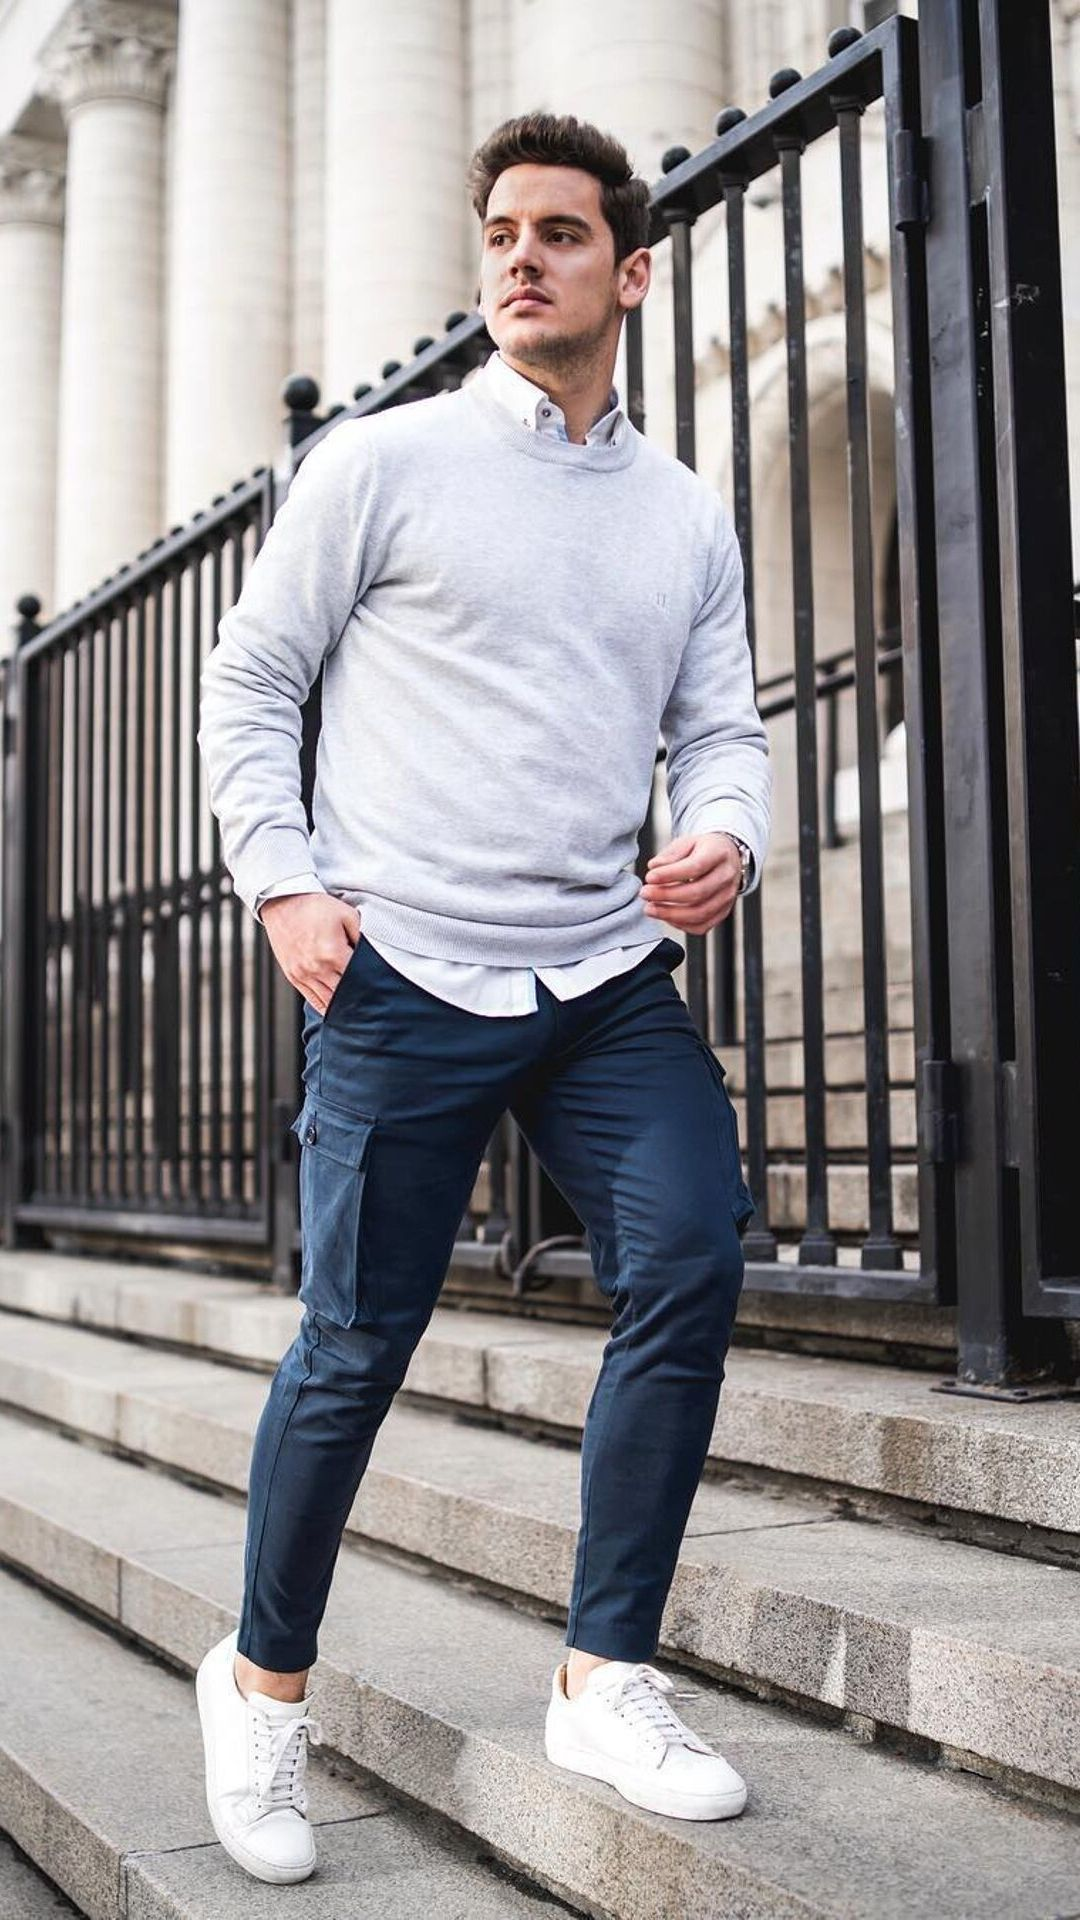 5 Dapper Fall Outfits For Young Guys in 2020 | Mens ...